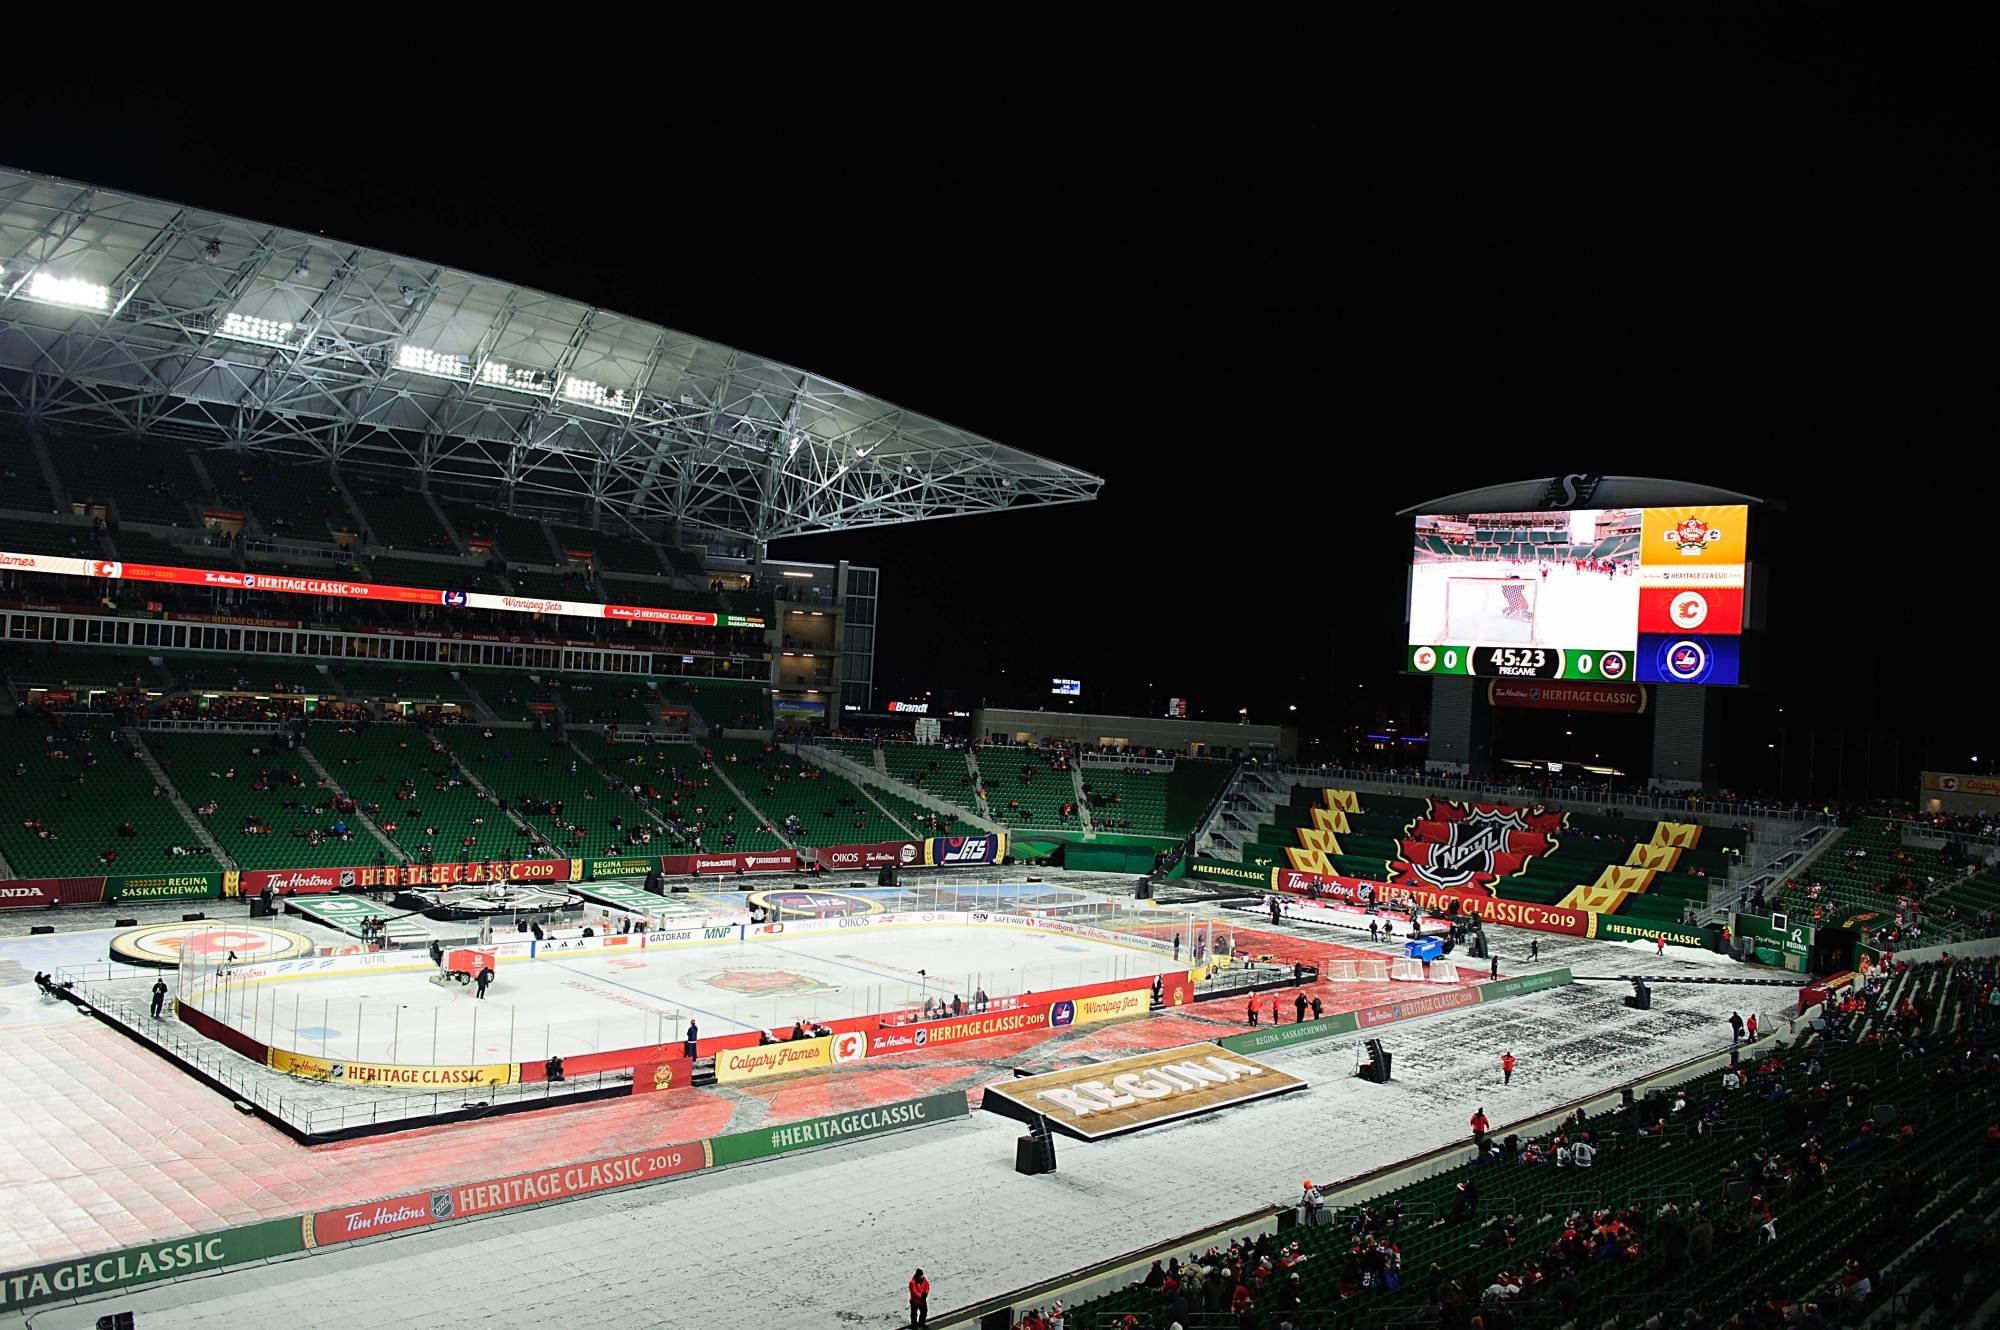 Mosaic Stadium is seen before the start of the 2019 Heritage Classic between the Jets and Flames on Oct. 26, 2019. | USA TODAY / VIA REUTERS